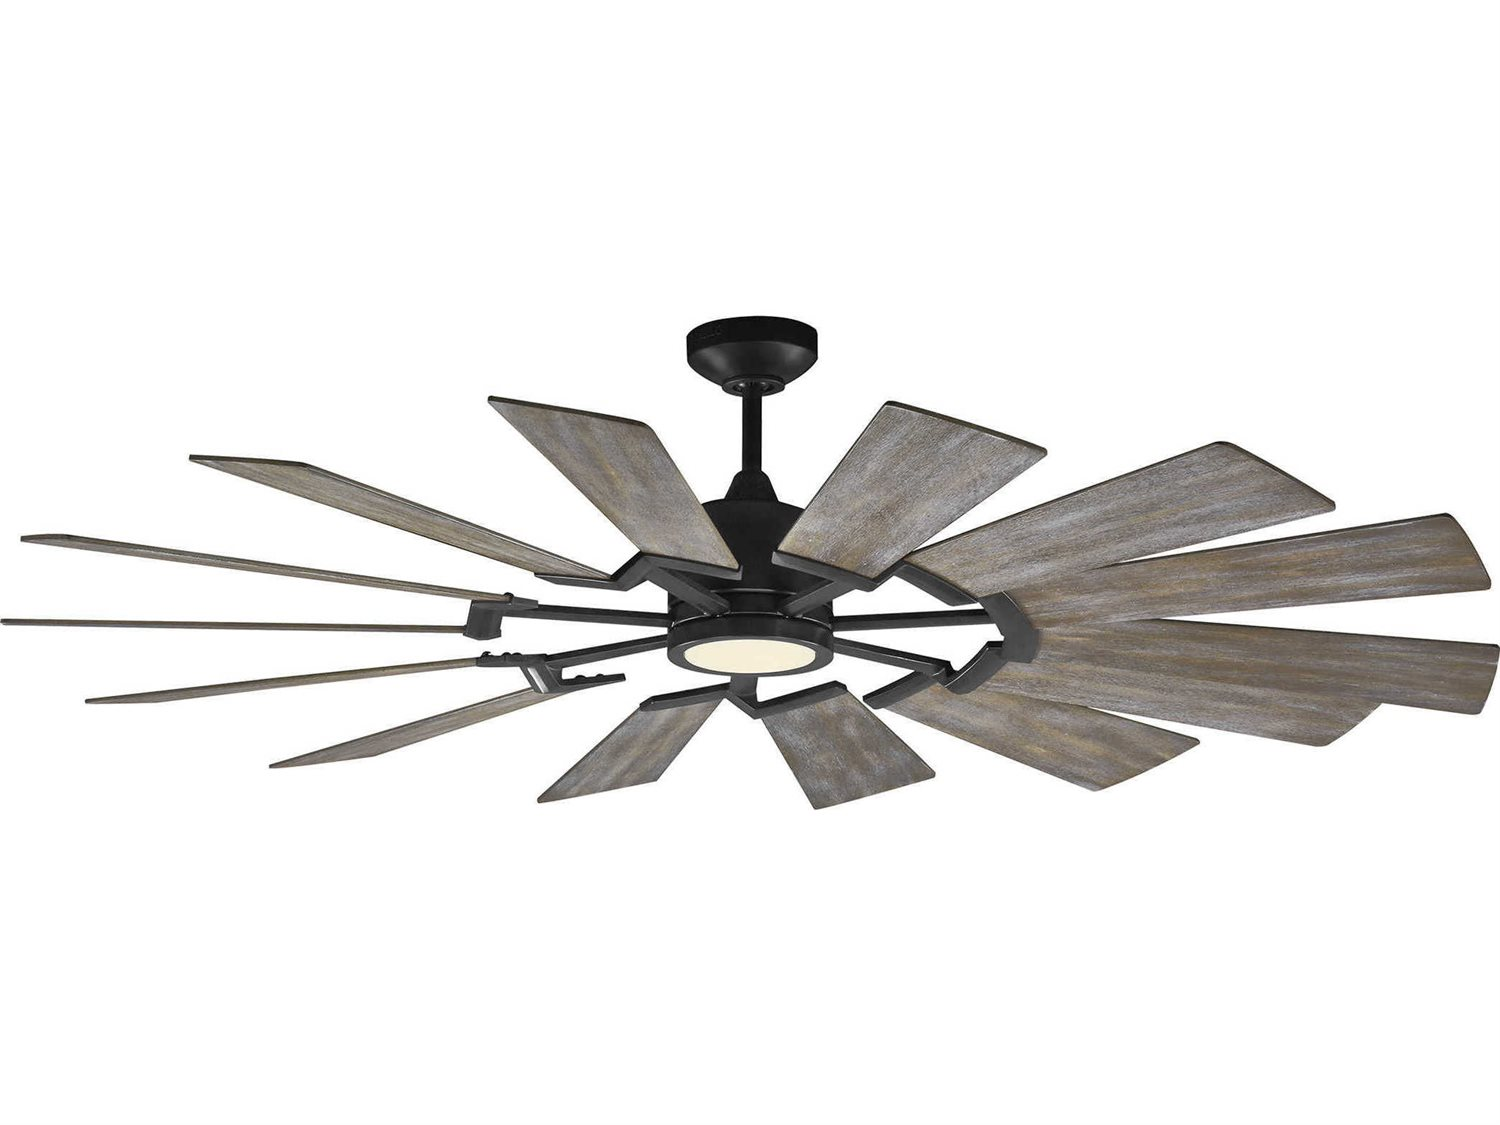 Monte Carlo Fans >> Monte Carlo Fans Prairie Aged Pewter 62 Wide Led Indoor Ceiling Fan With Light Grey Weathered Oak Blades